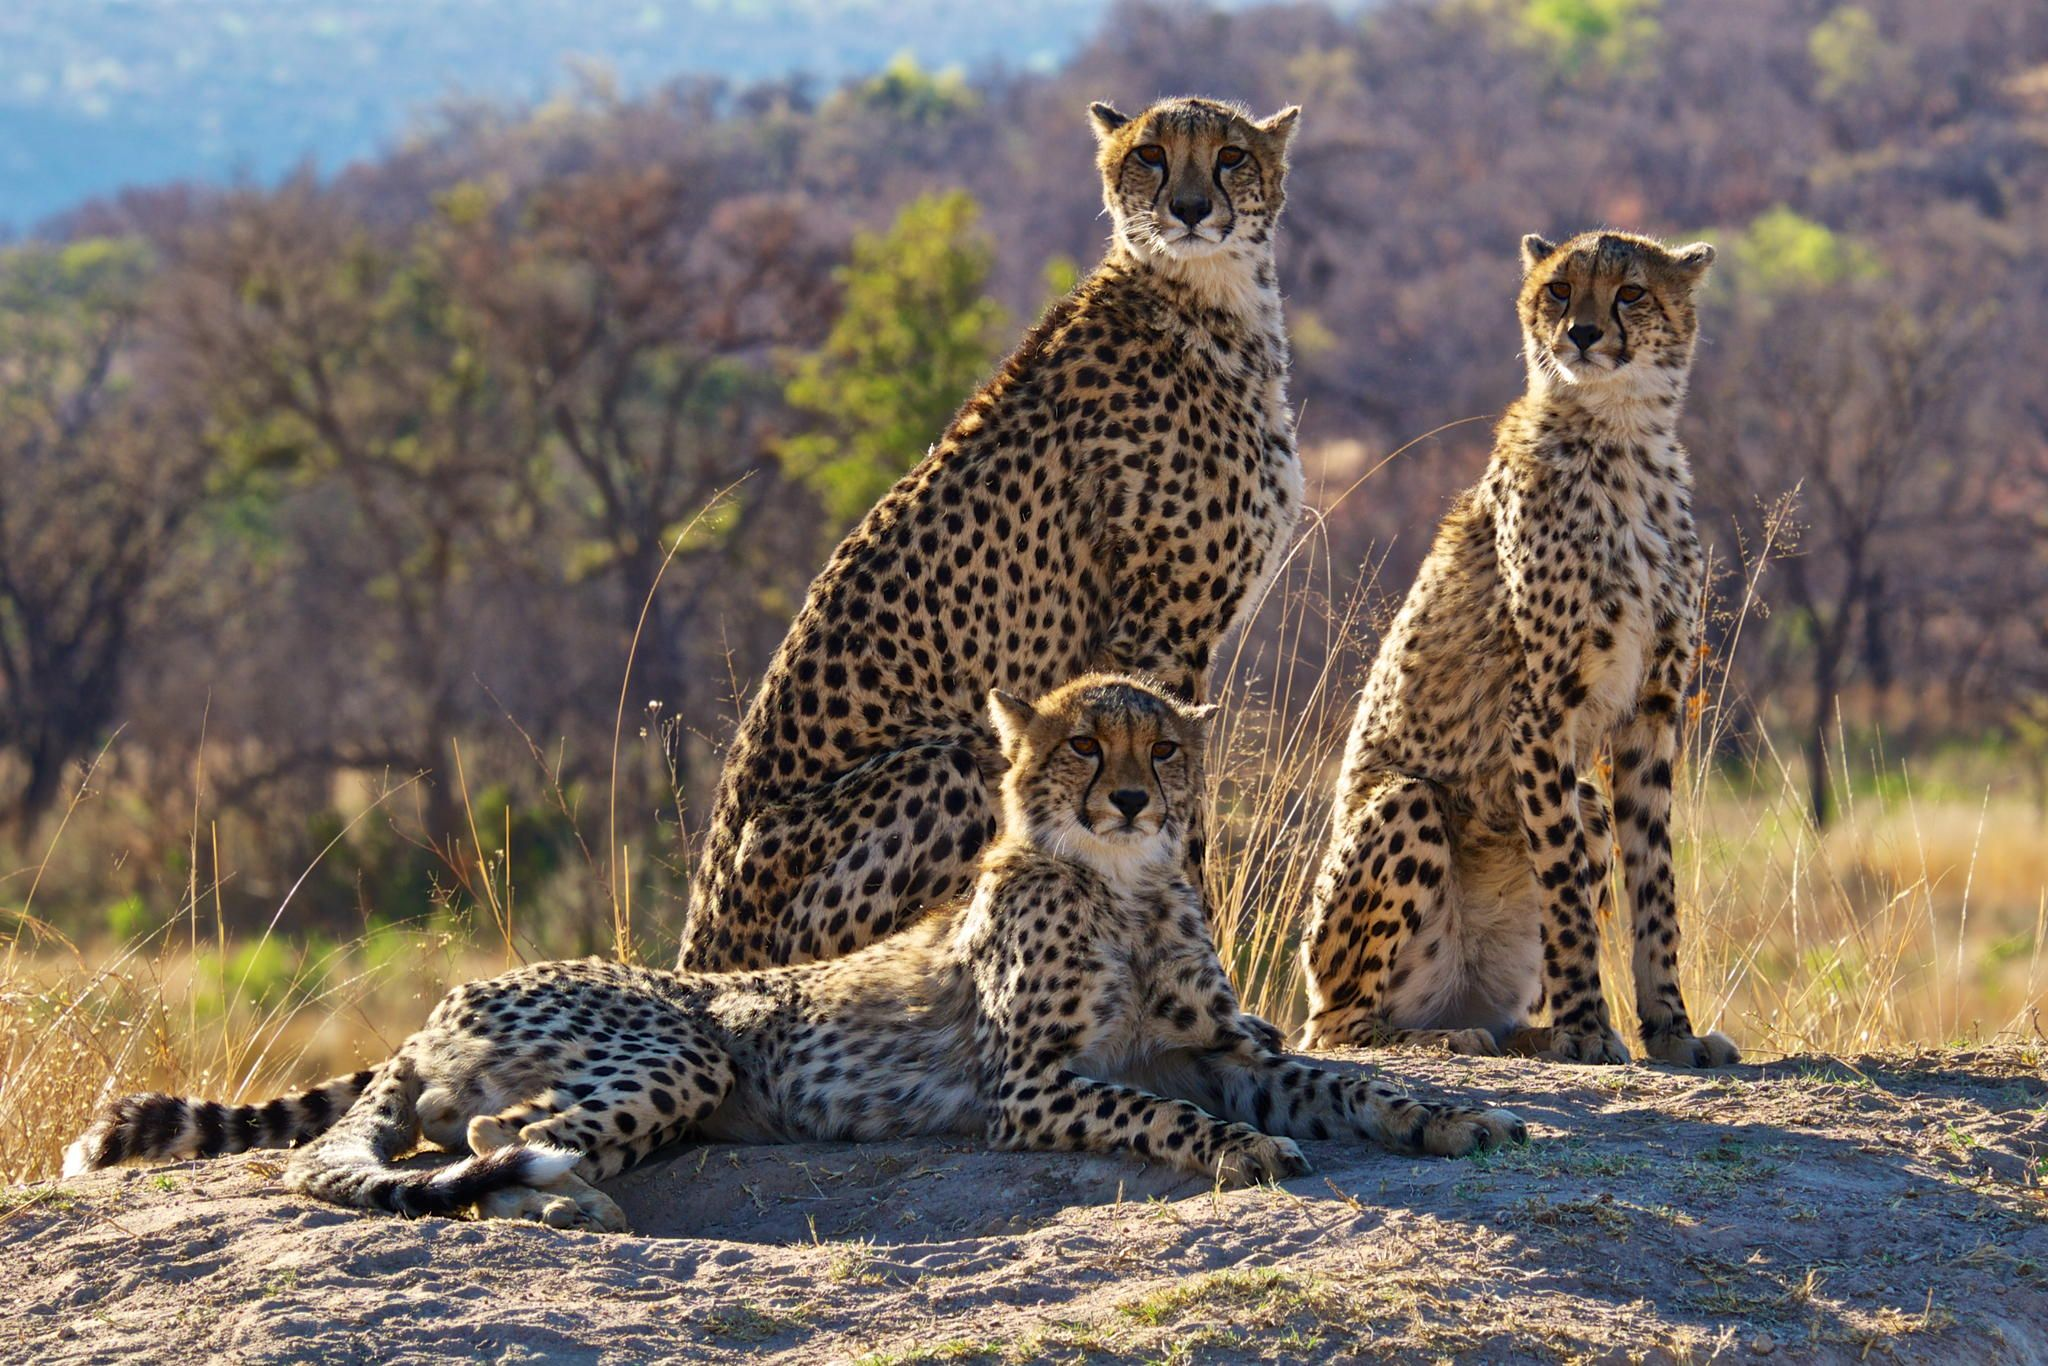 Family+Portrait+by+Robert+Bolton+on+500px WILD LIFE